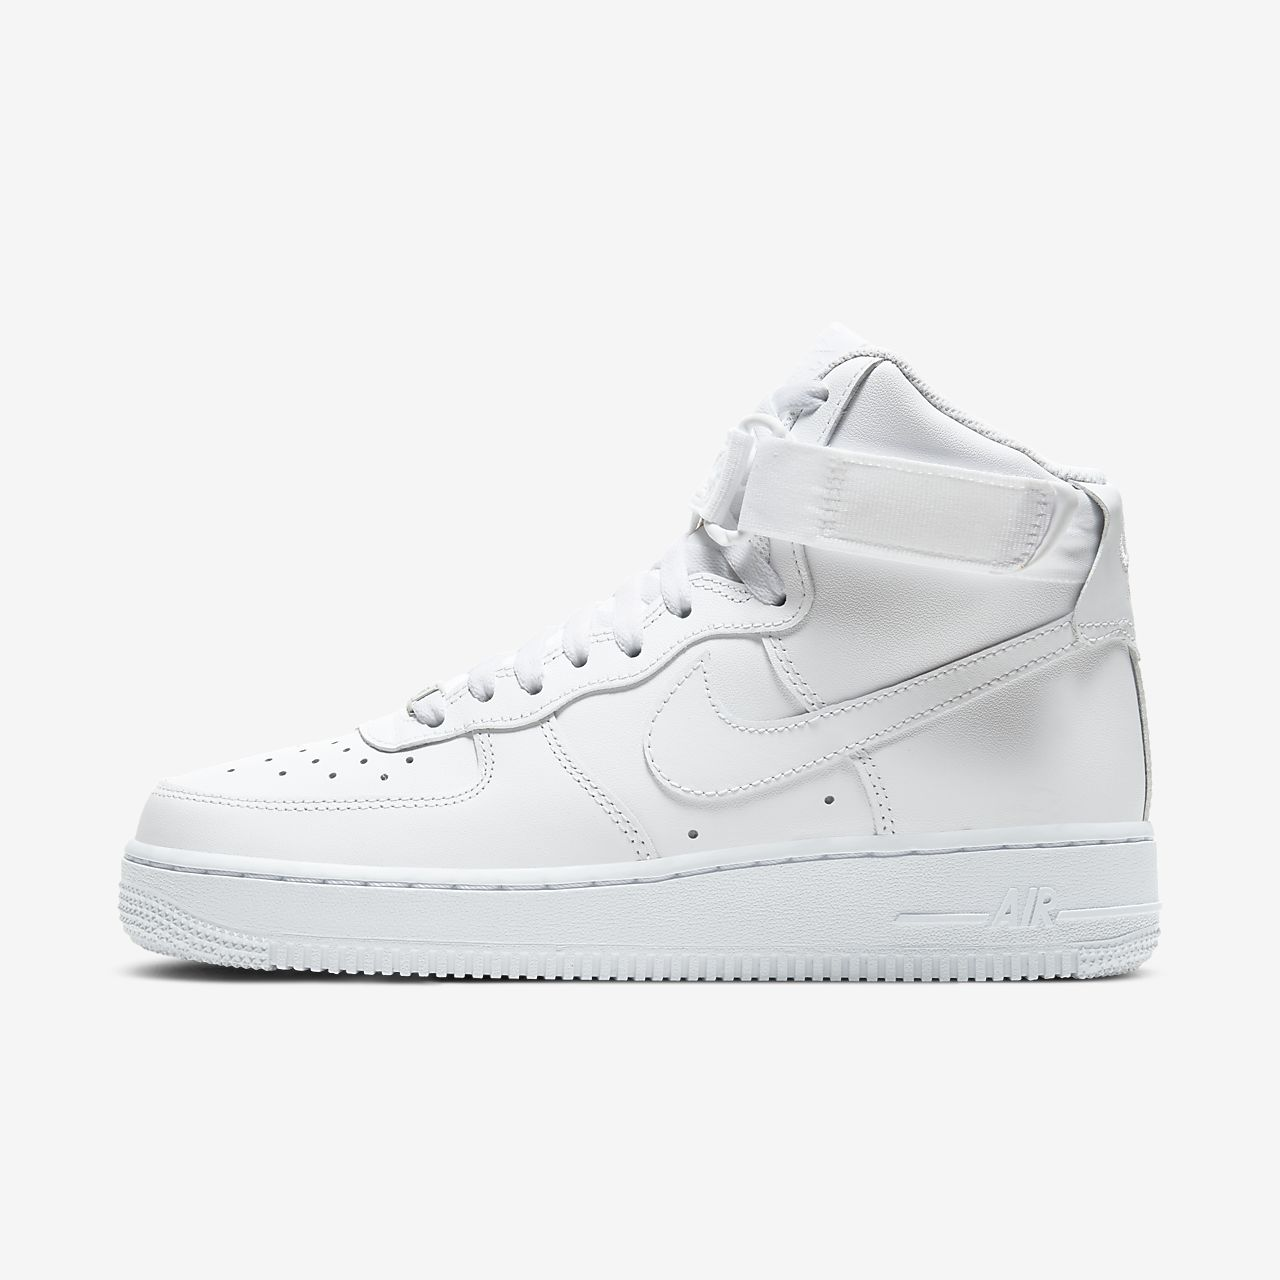 best website 380c5 0a6aa ... Nike Air Force 1 High 08 LE Women s Shoe